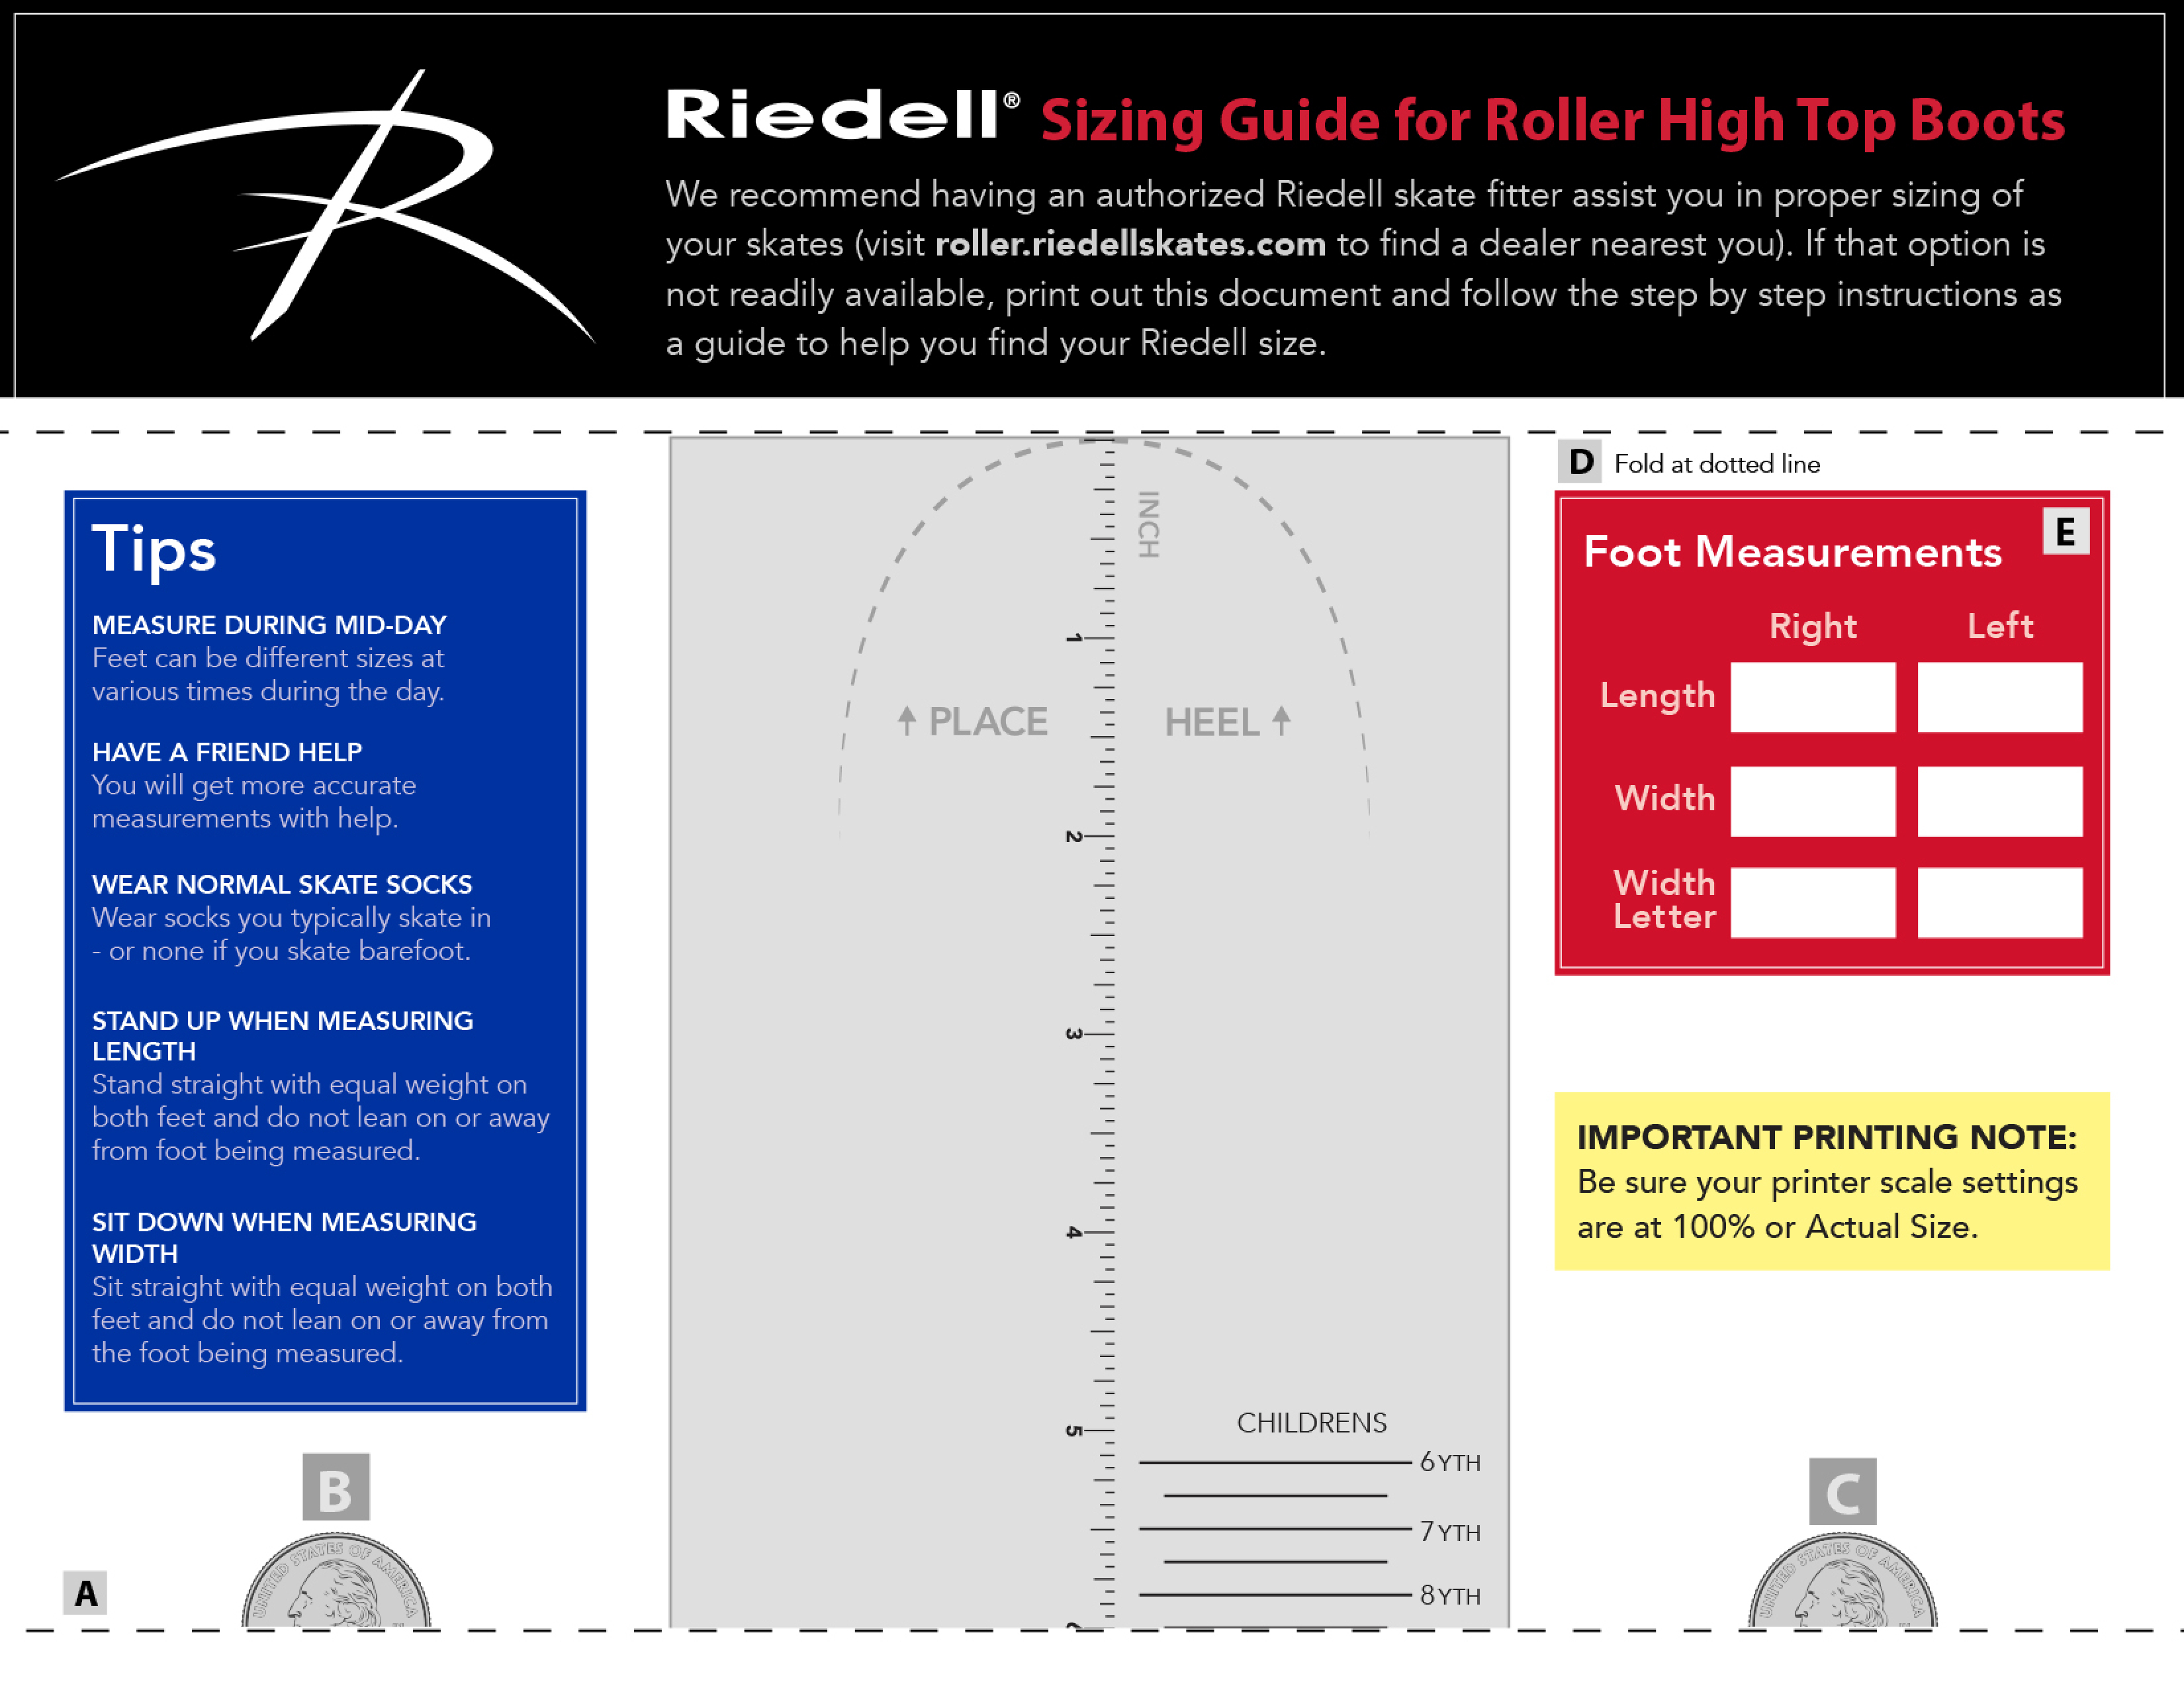 riedell-roller-sizing-guide-high-top-boots-1.jpg